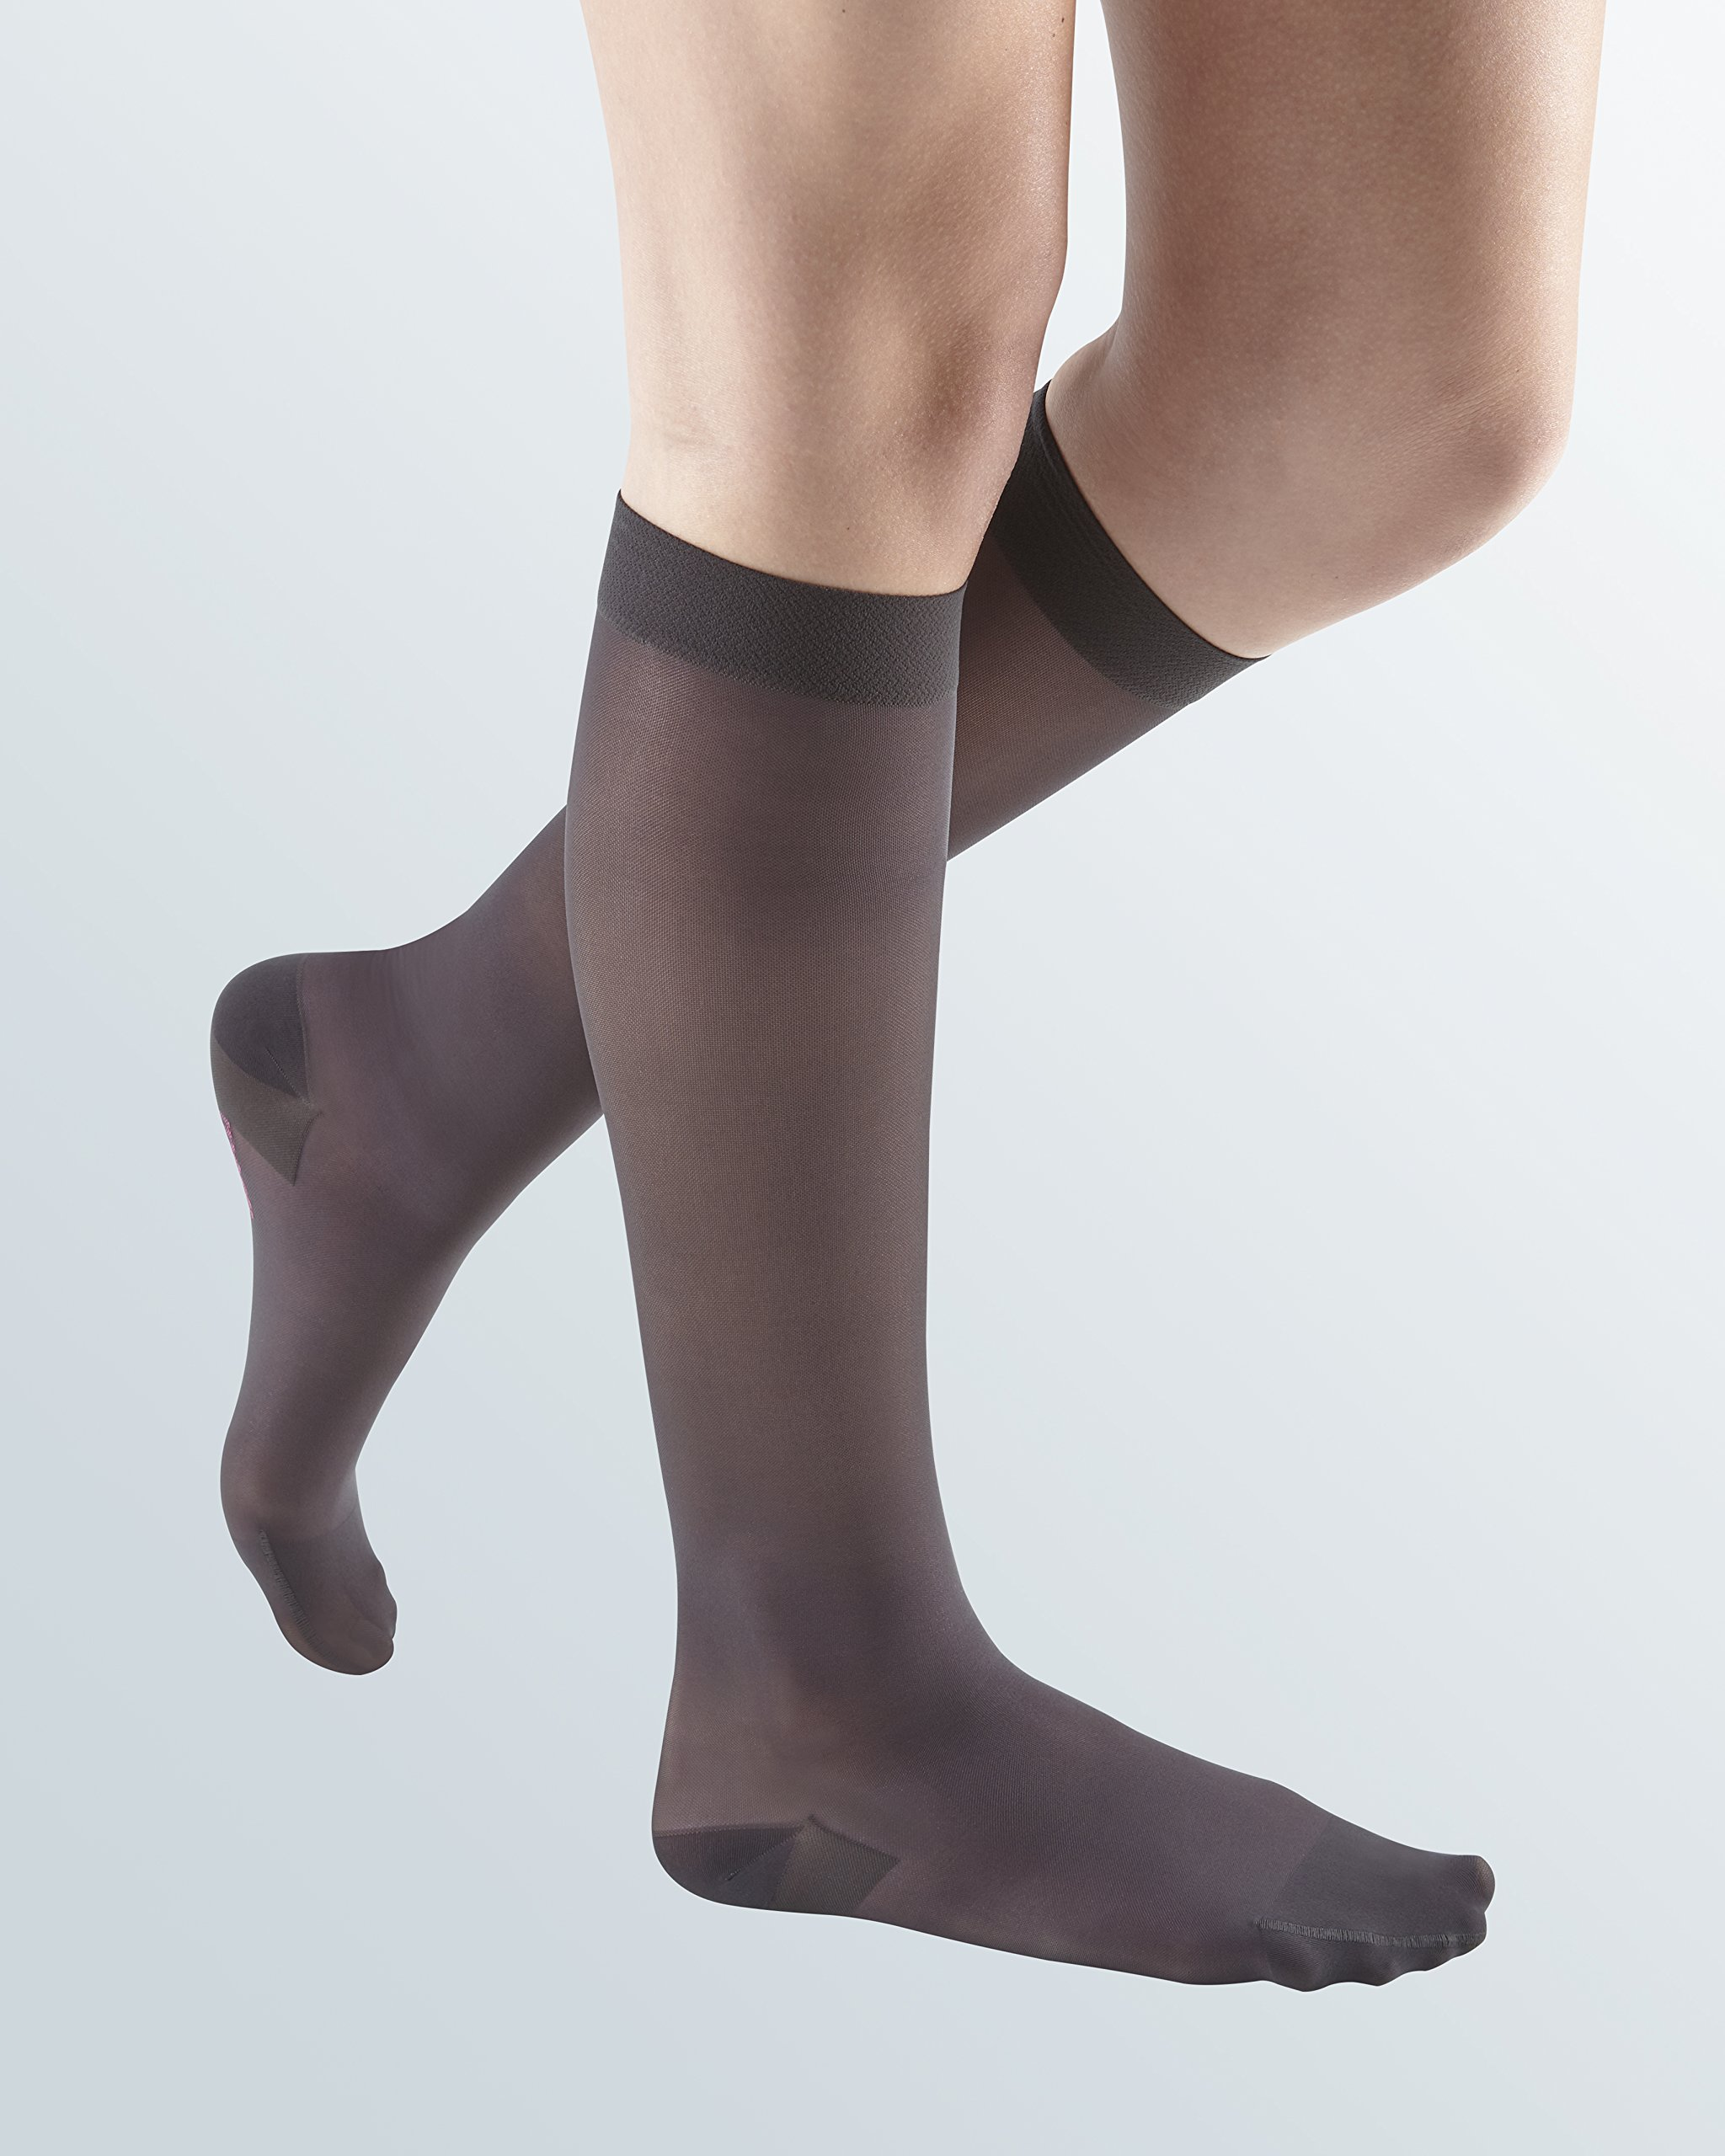 mediven Sheer & Soft, 20-30 mmHg, Calf High Compression Stockings, Closed Toe by mediven